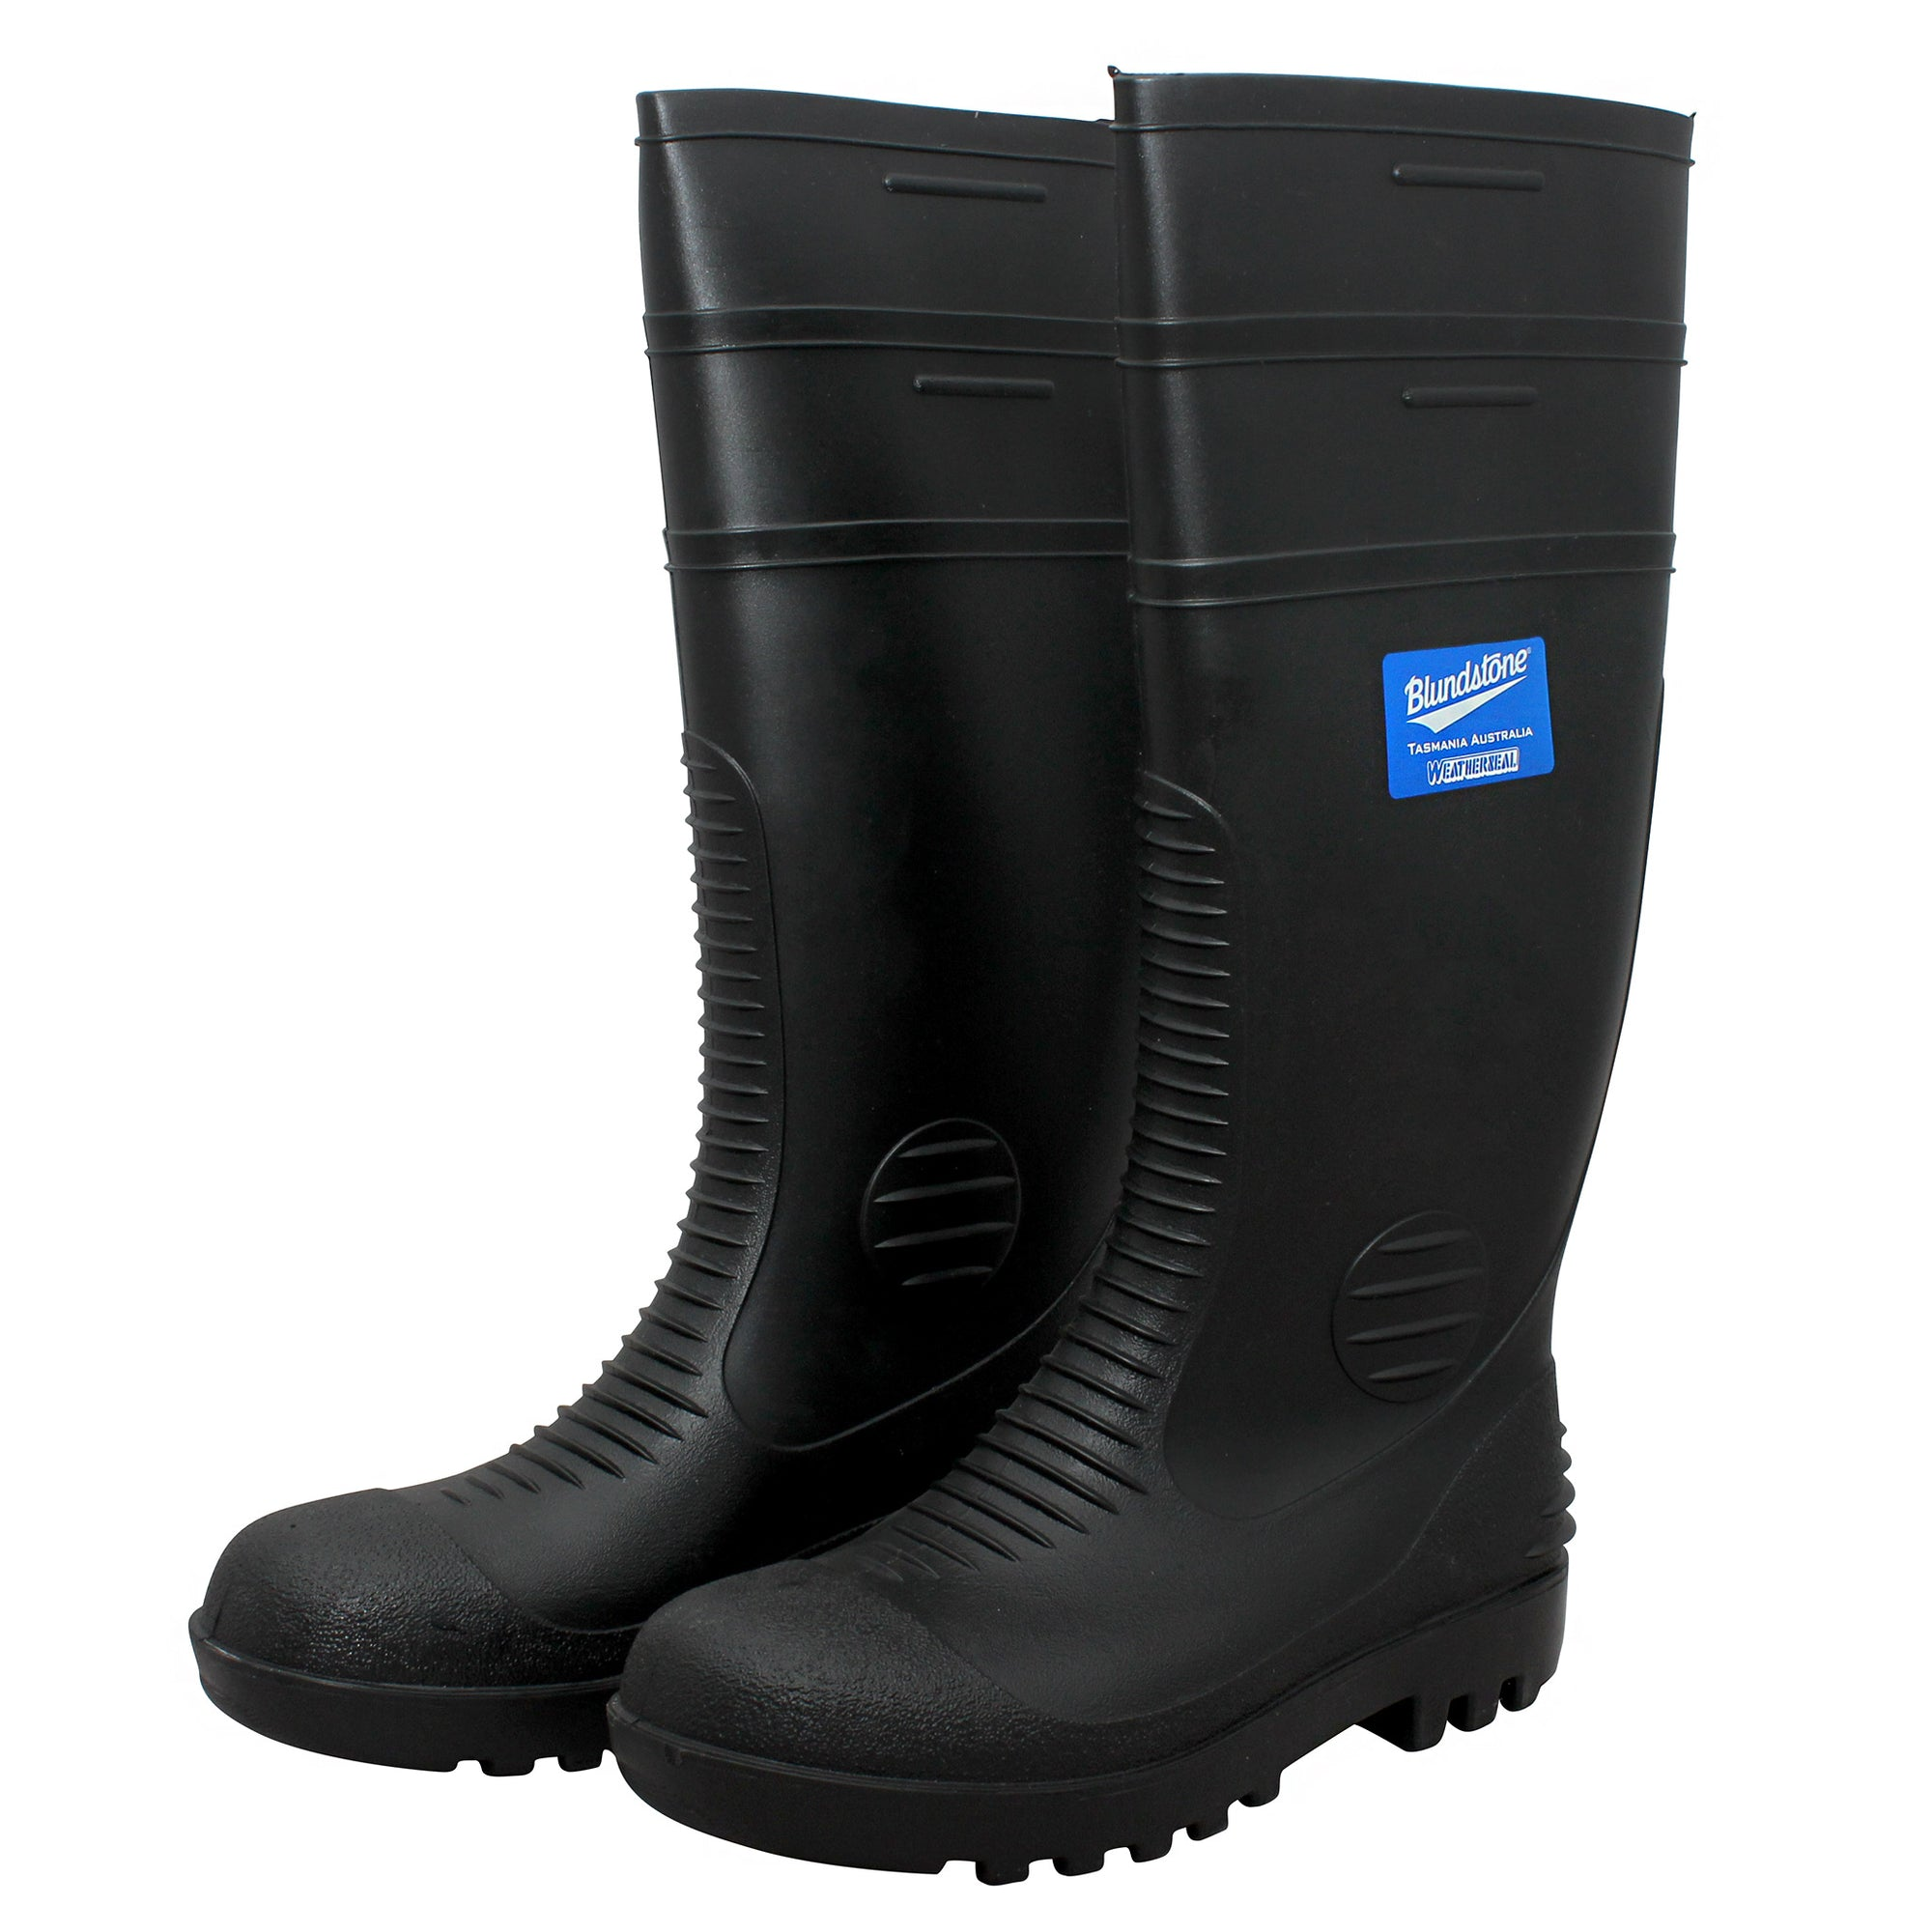 Blundstone Black Rubber Gumboots - Style 001